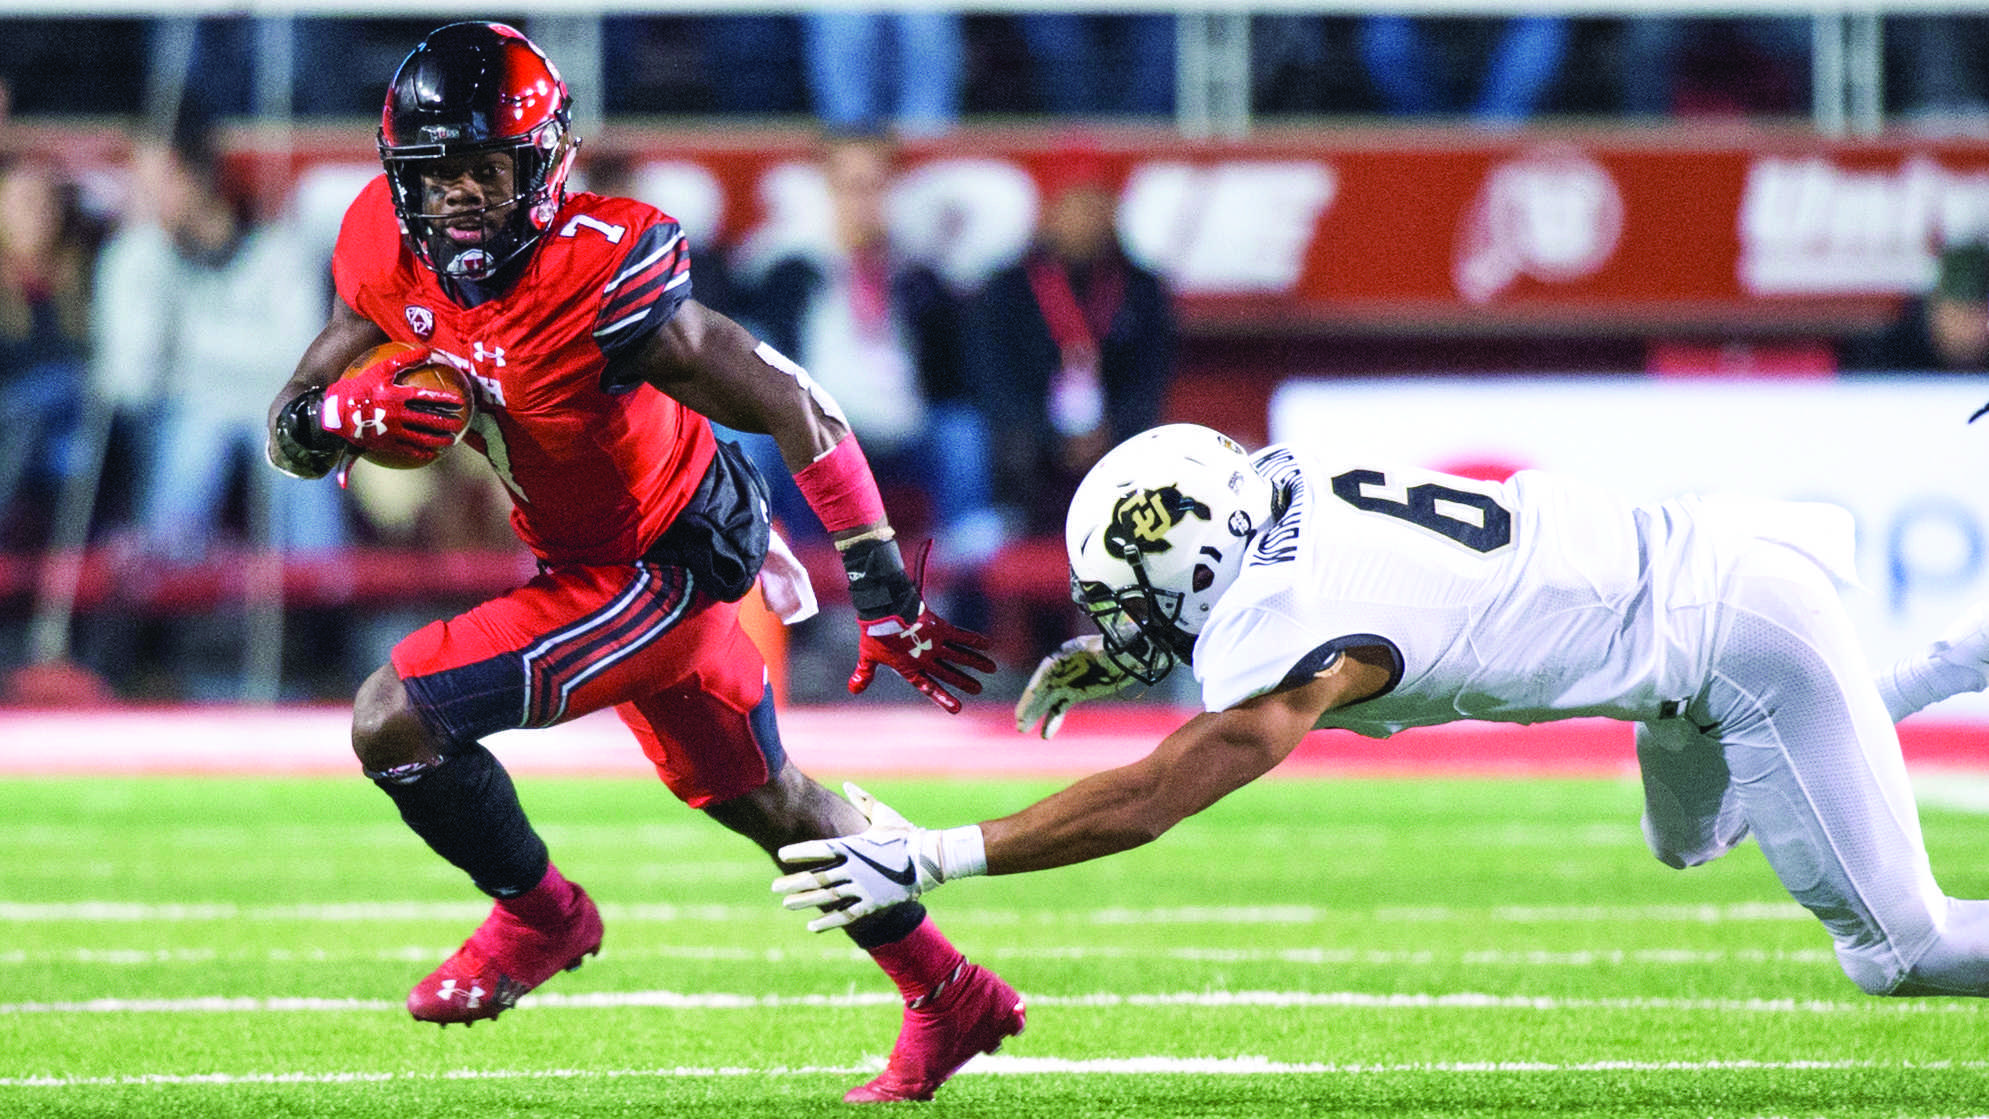 University of Utah sophomore running back Devonta'e Henry-Cole (7) evades University of Colorado junior defensive back Evan Worthington (6) in an NCAA Football game at Rice Eccles Stadium in Salt Lake City, Utah on Saturday, Nov. 25, 2017  (Photo by Kiffer Creveling | The Daily Utah Chronicle)